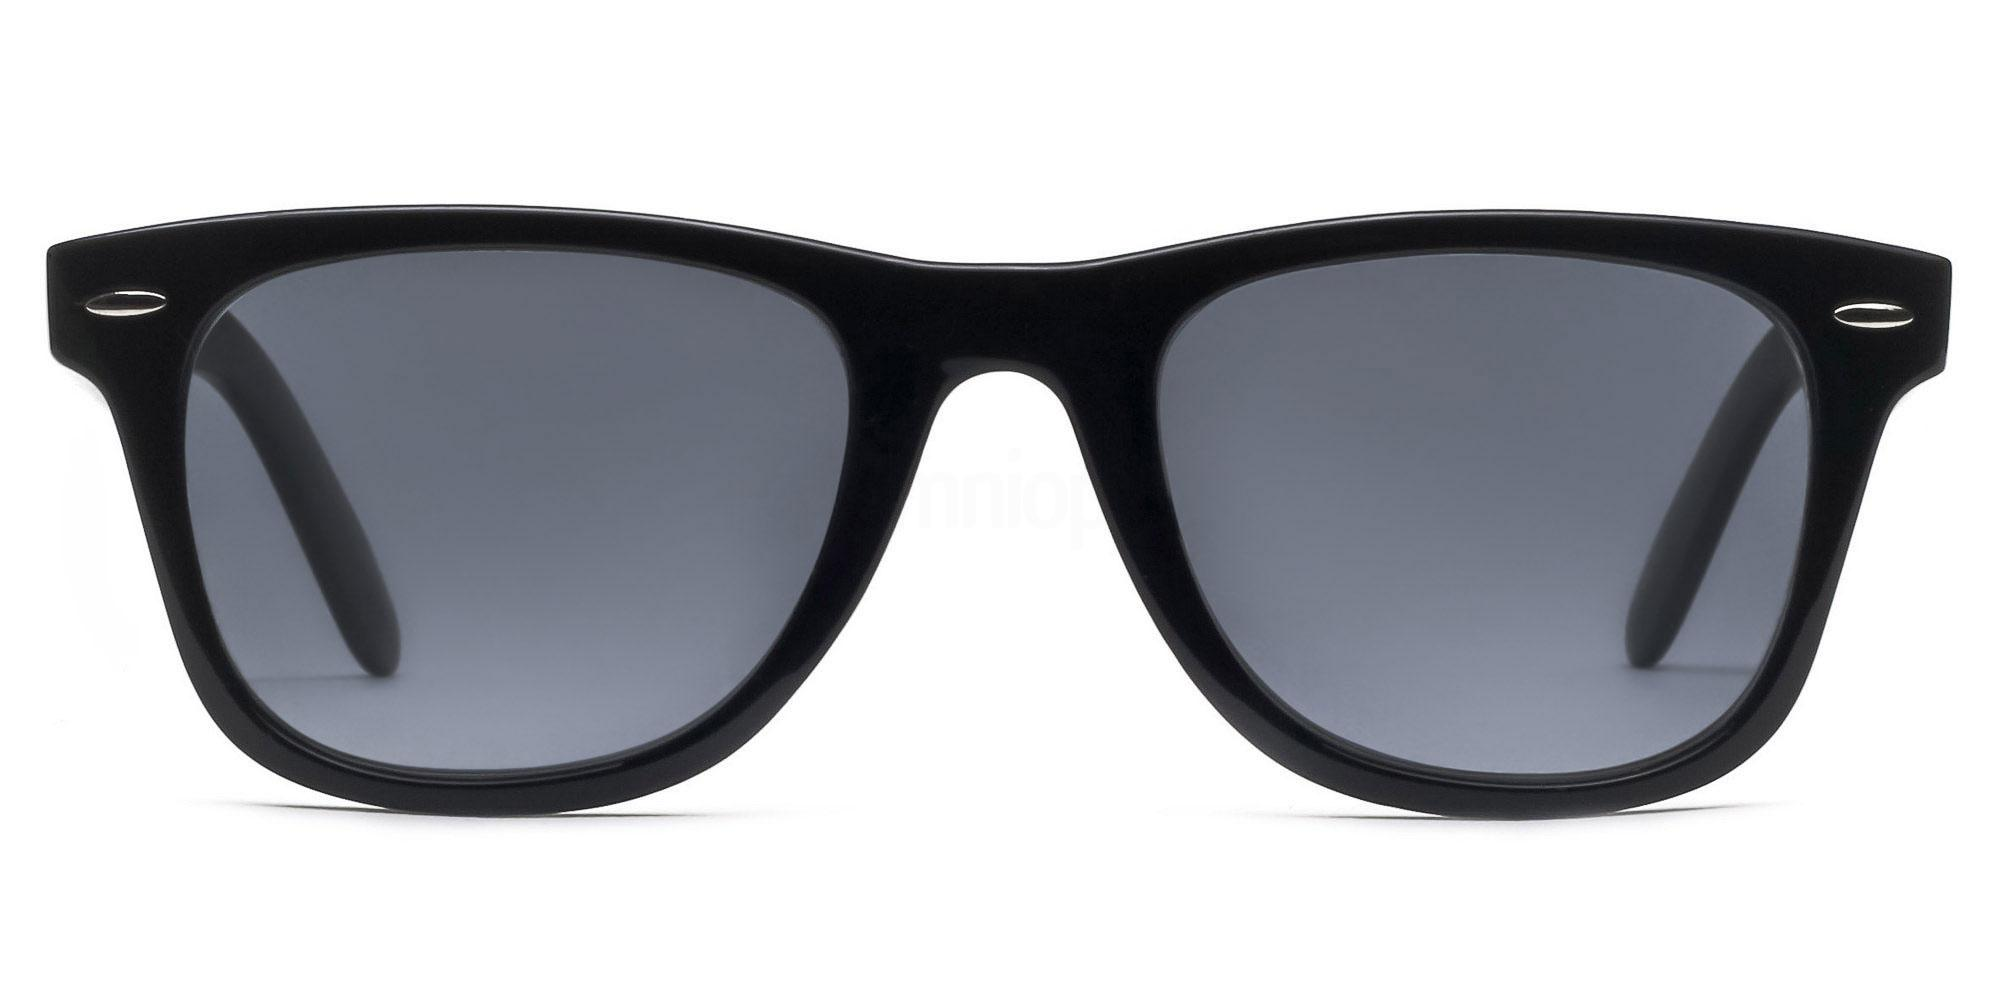 C01 Dark Grey P2429 - Black (Sunglasses) , Savannah